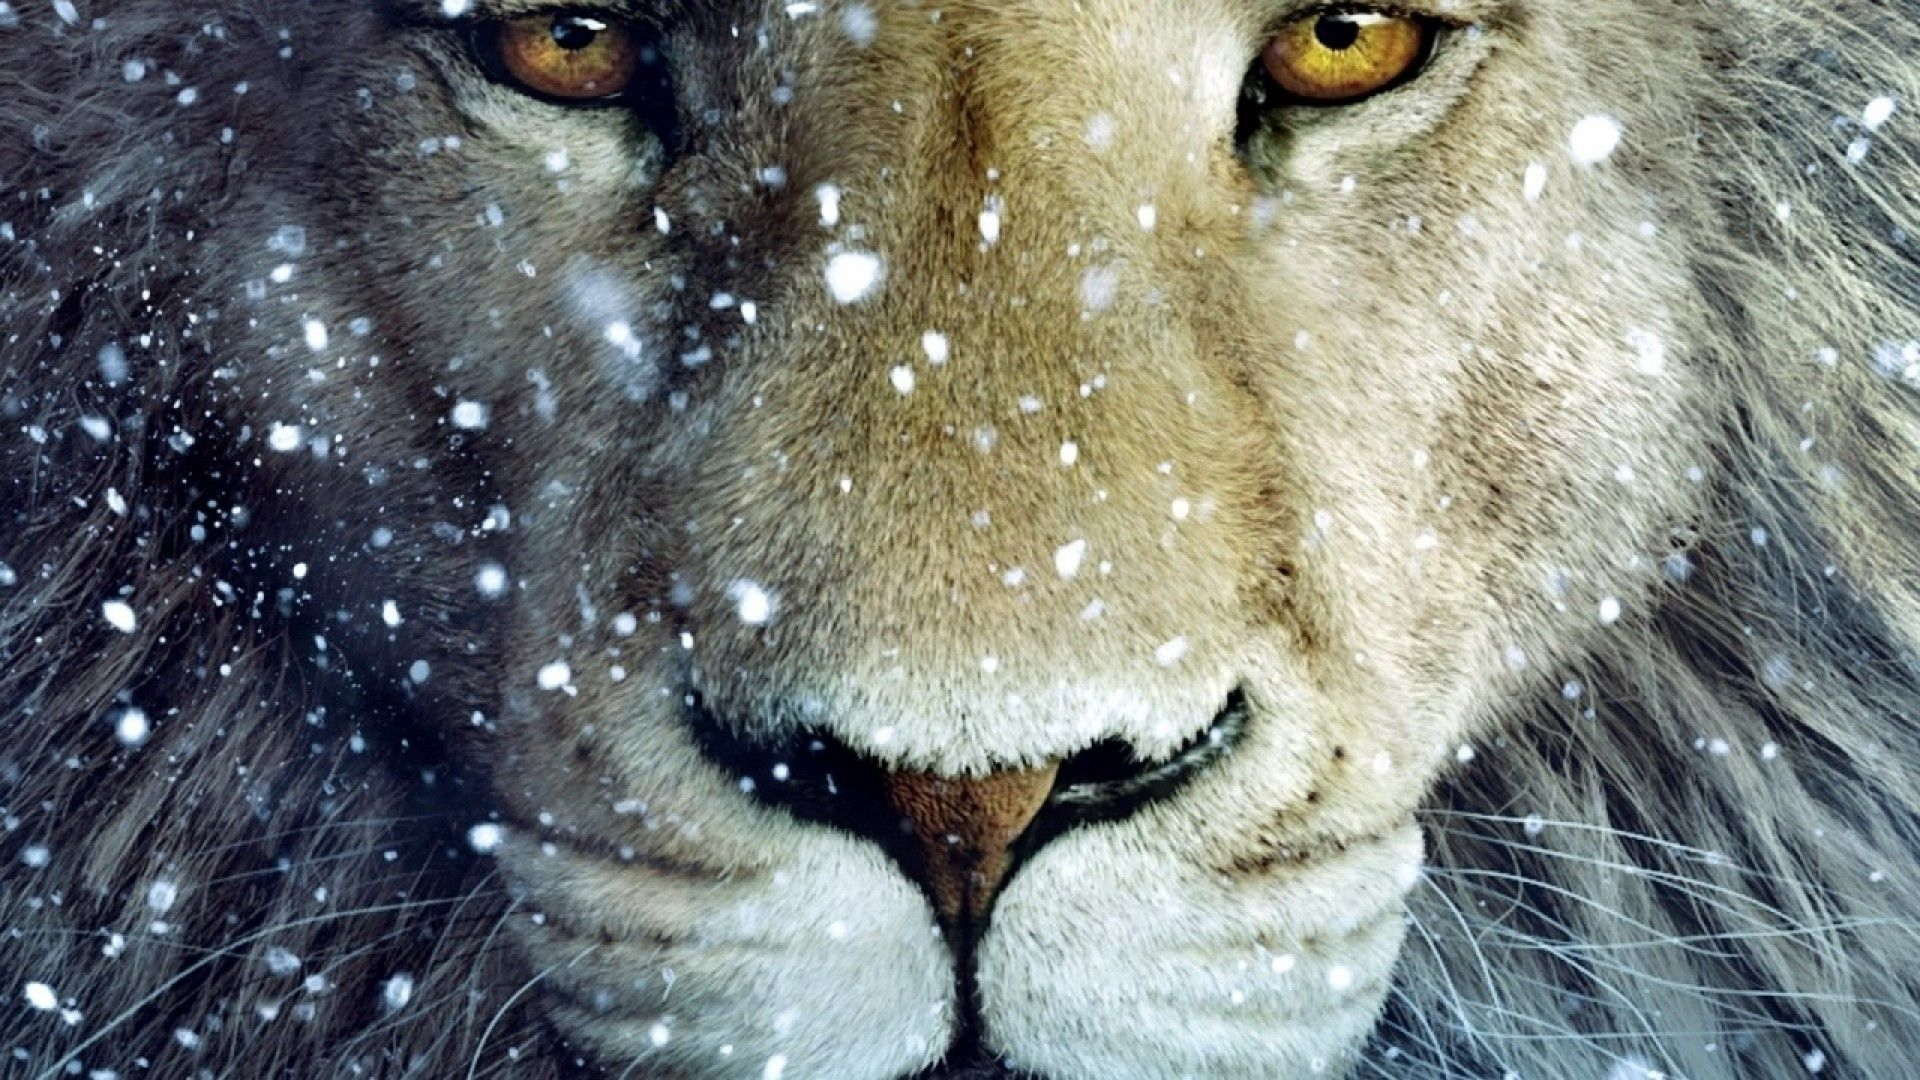 Lion Wallpaper 1080p Hd